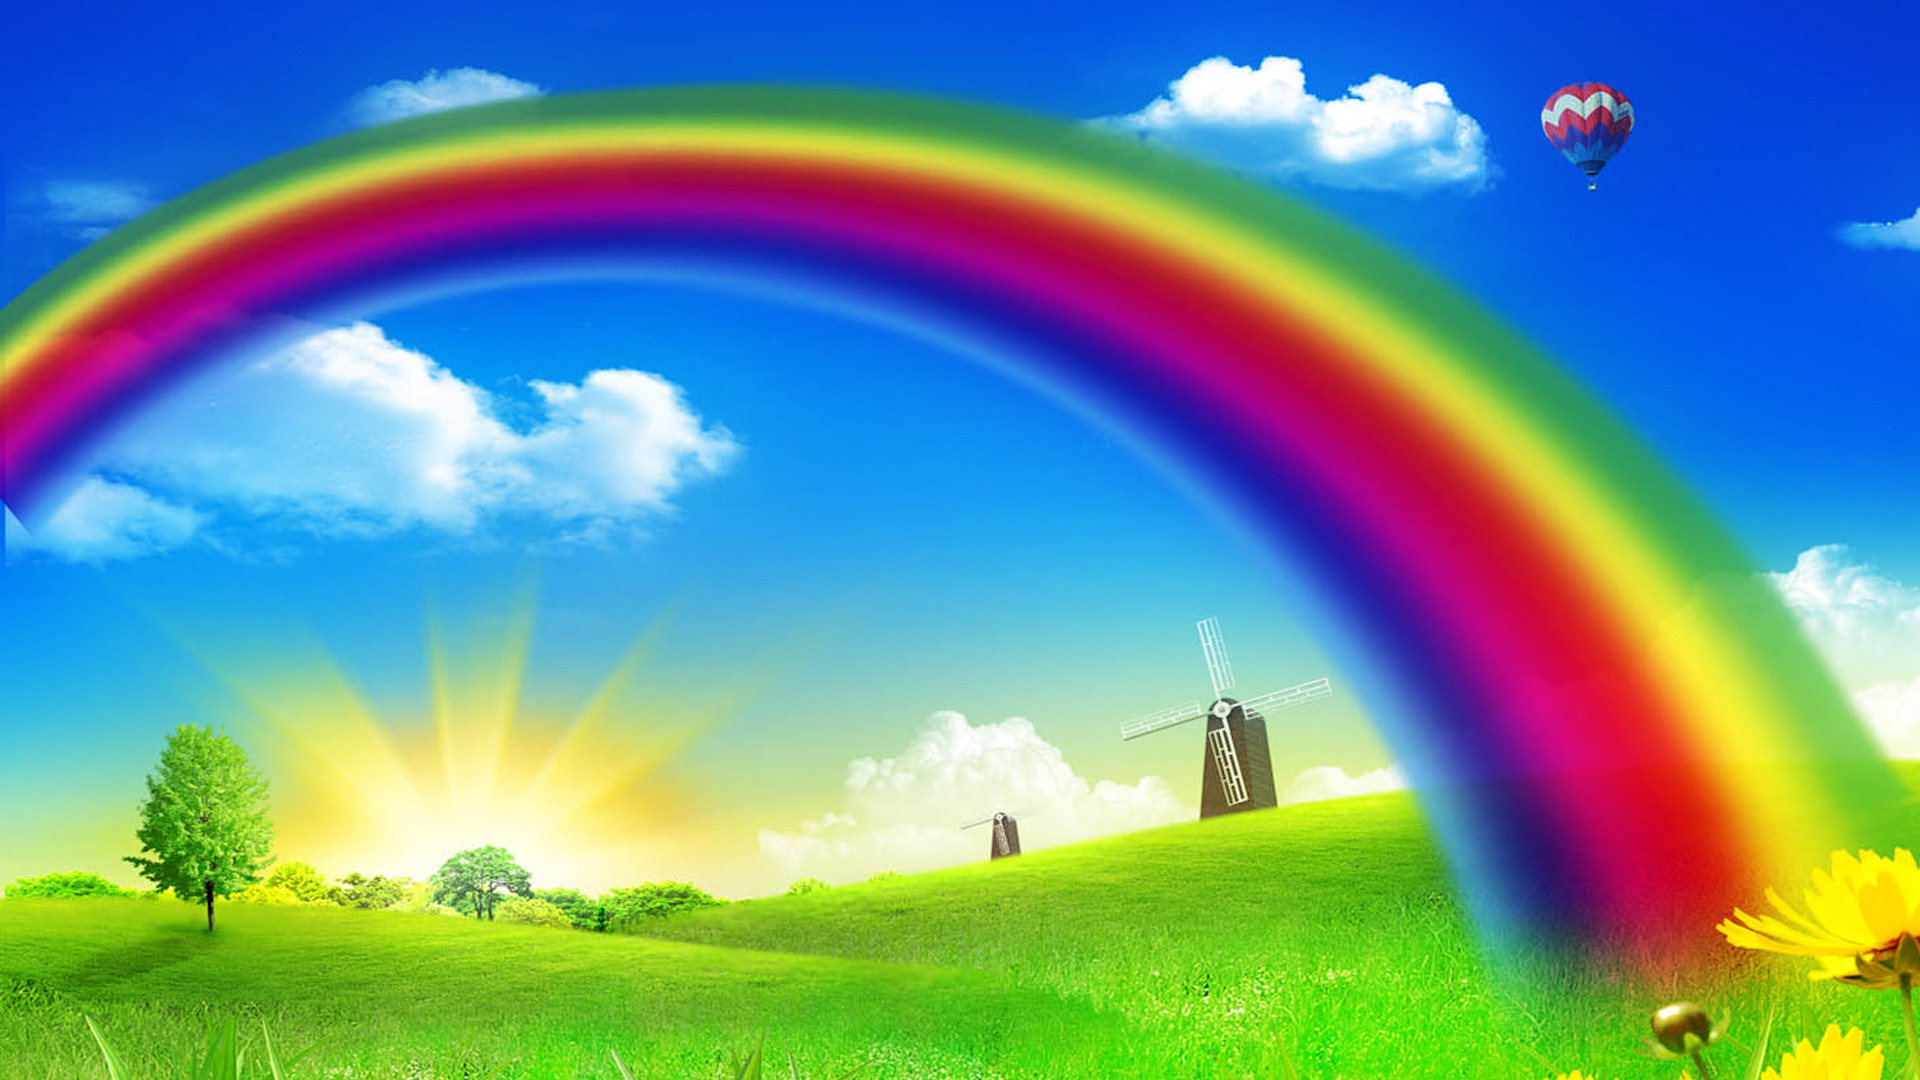 rainbow illustration wallpaper 1920x1080 - photo #18